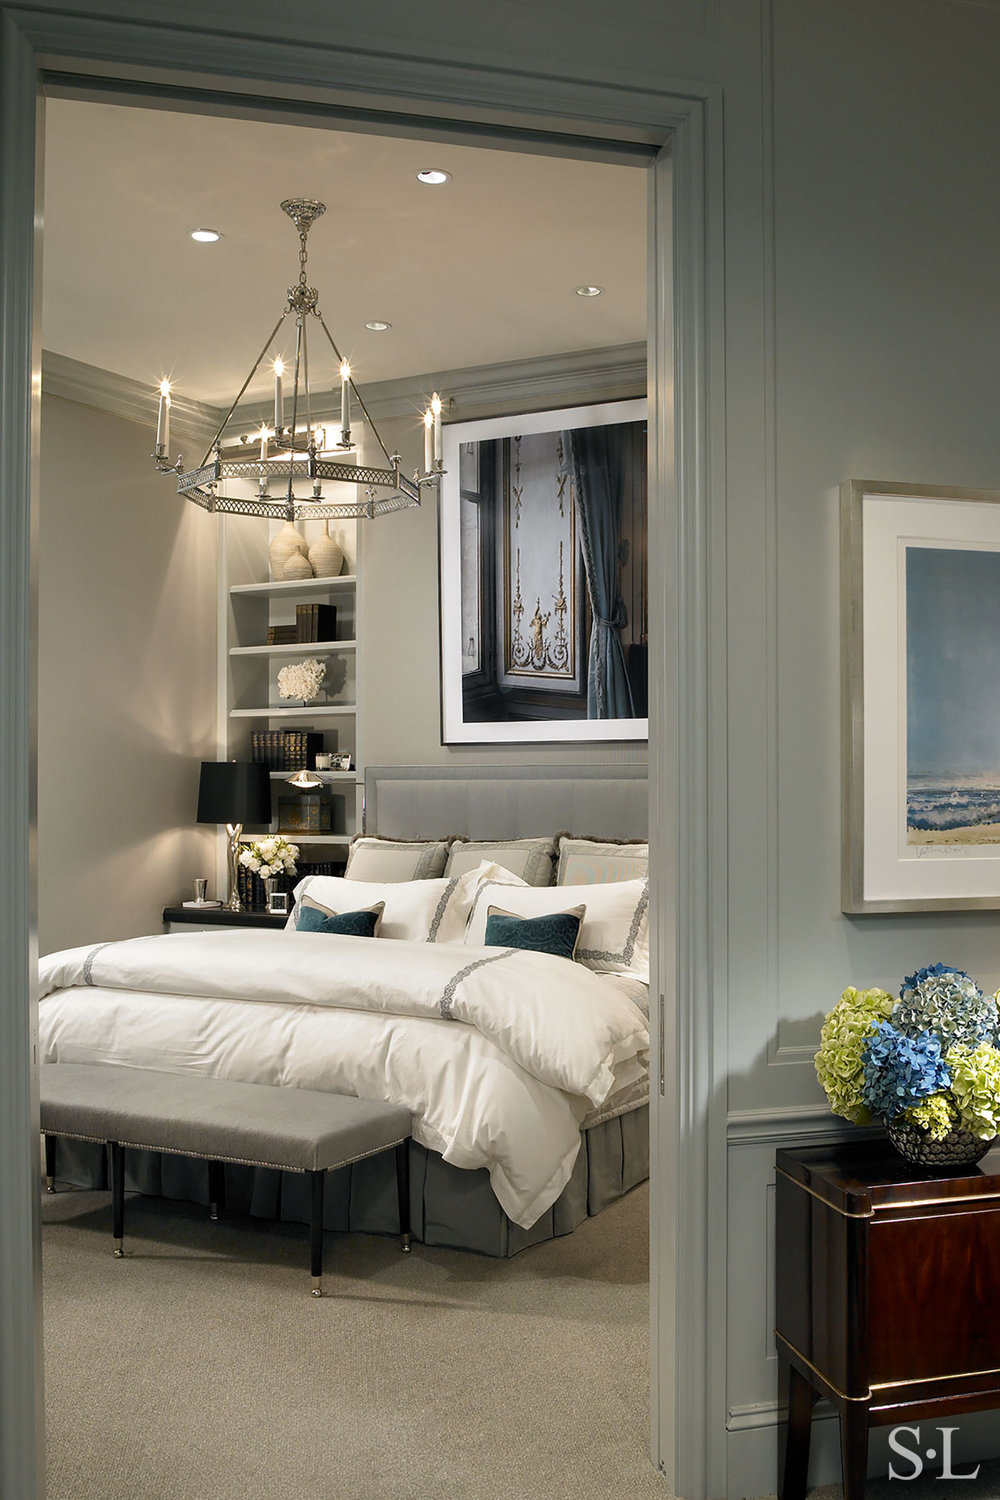 custom headboard & bedding  Interior Architecture & Design: Suzanne Lovell, Inc.